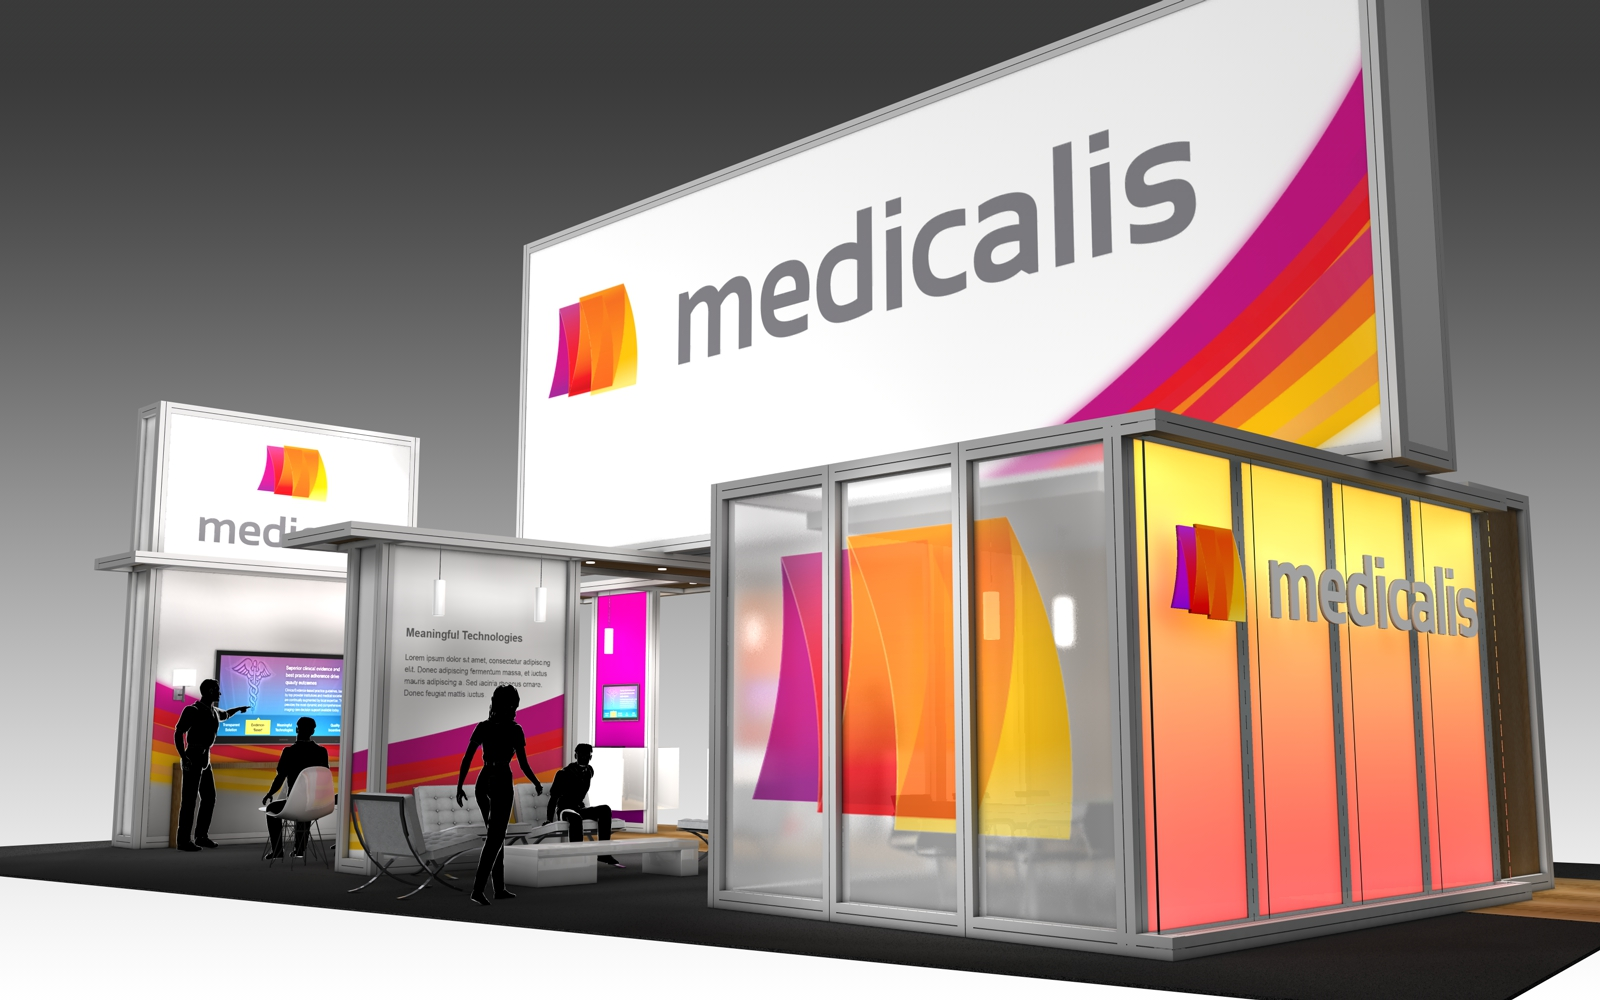 30' x 50' rental exhibit with vibrant graphics and large corporate branding